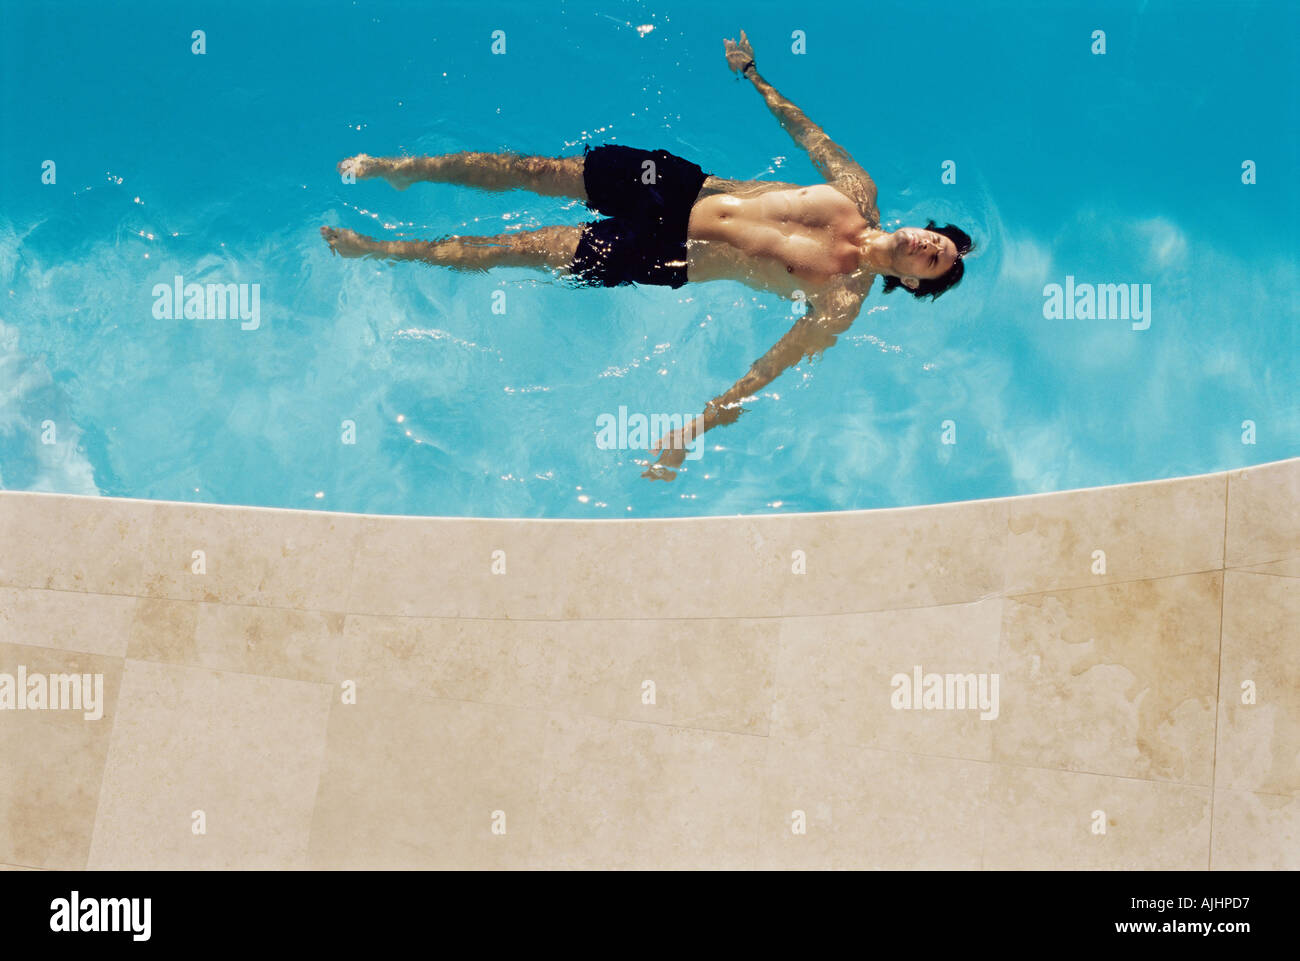 Man floating in swimming pool - Stock Image